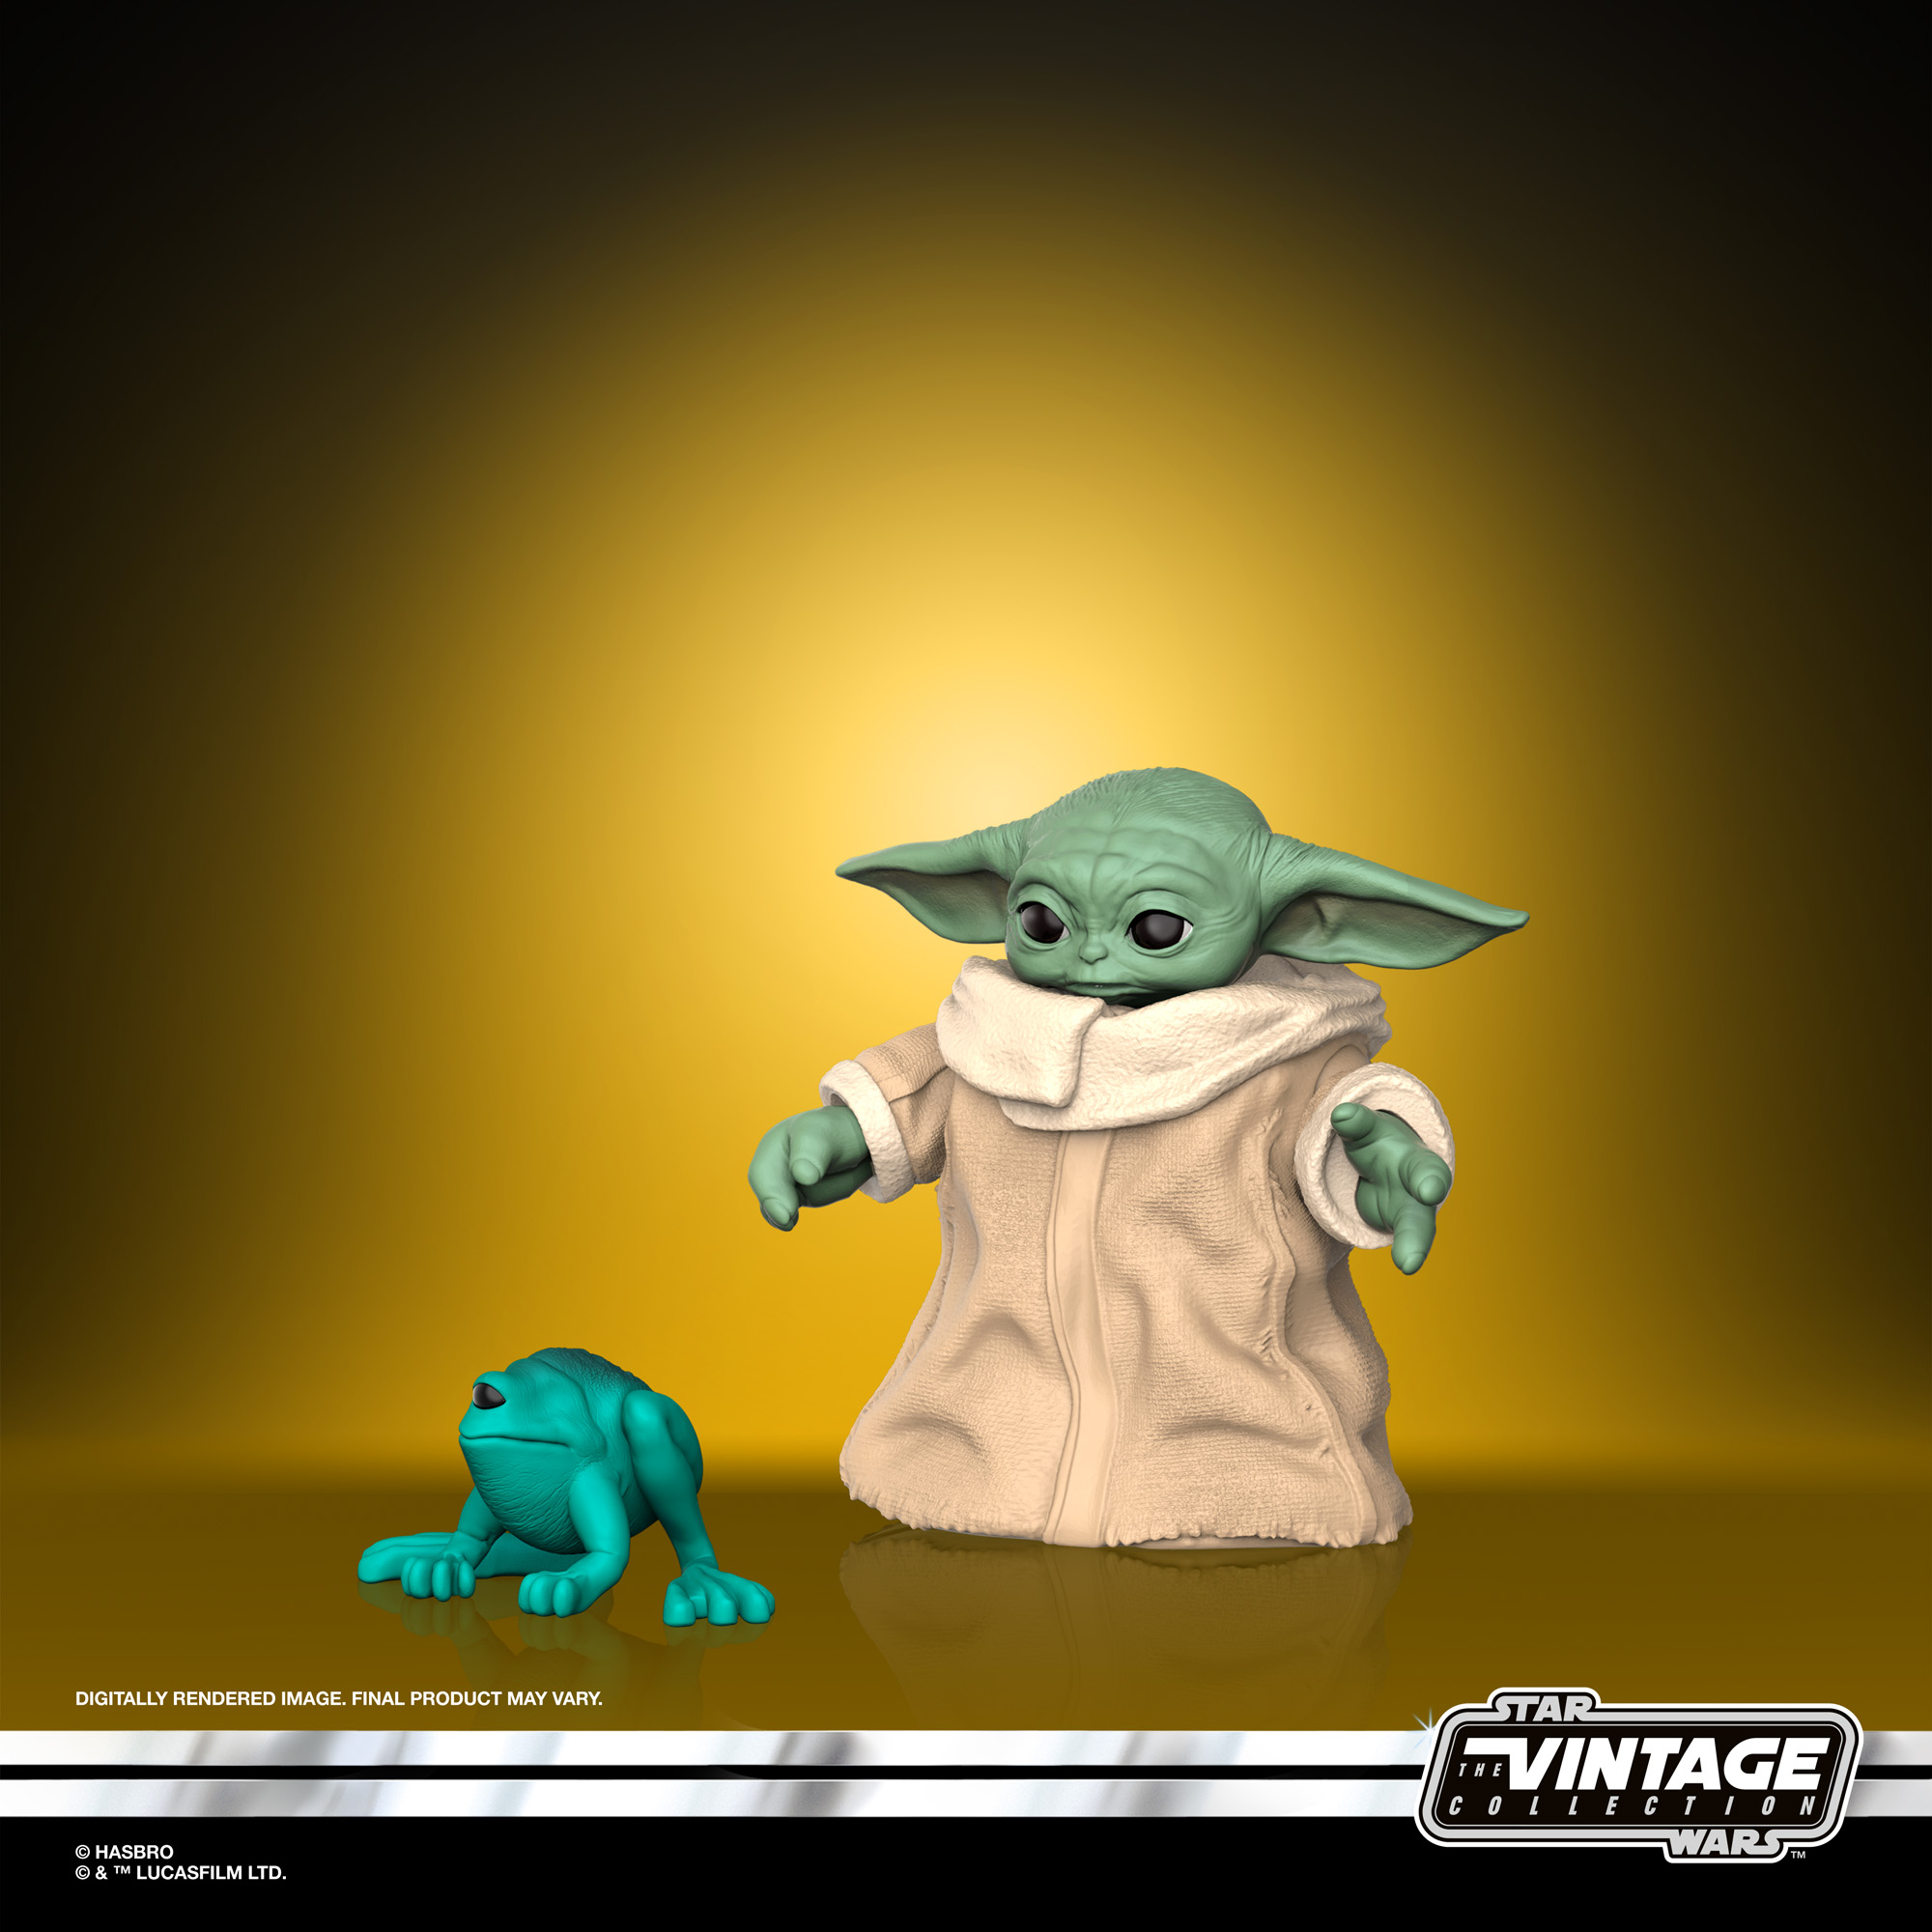 STAR WARS THE VINTAGE COLLECTION 3.75-INCH THE CHILD Figure – oop(2)